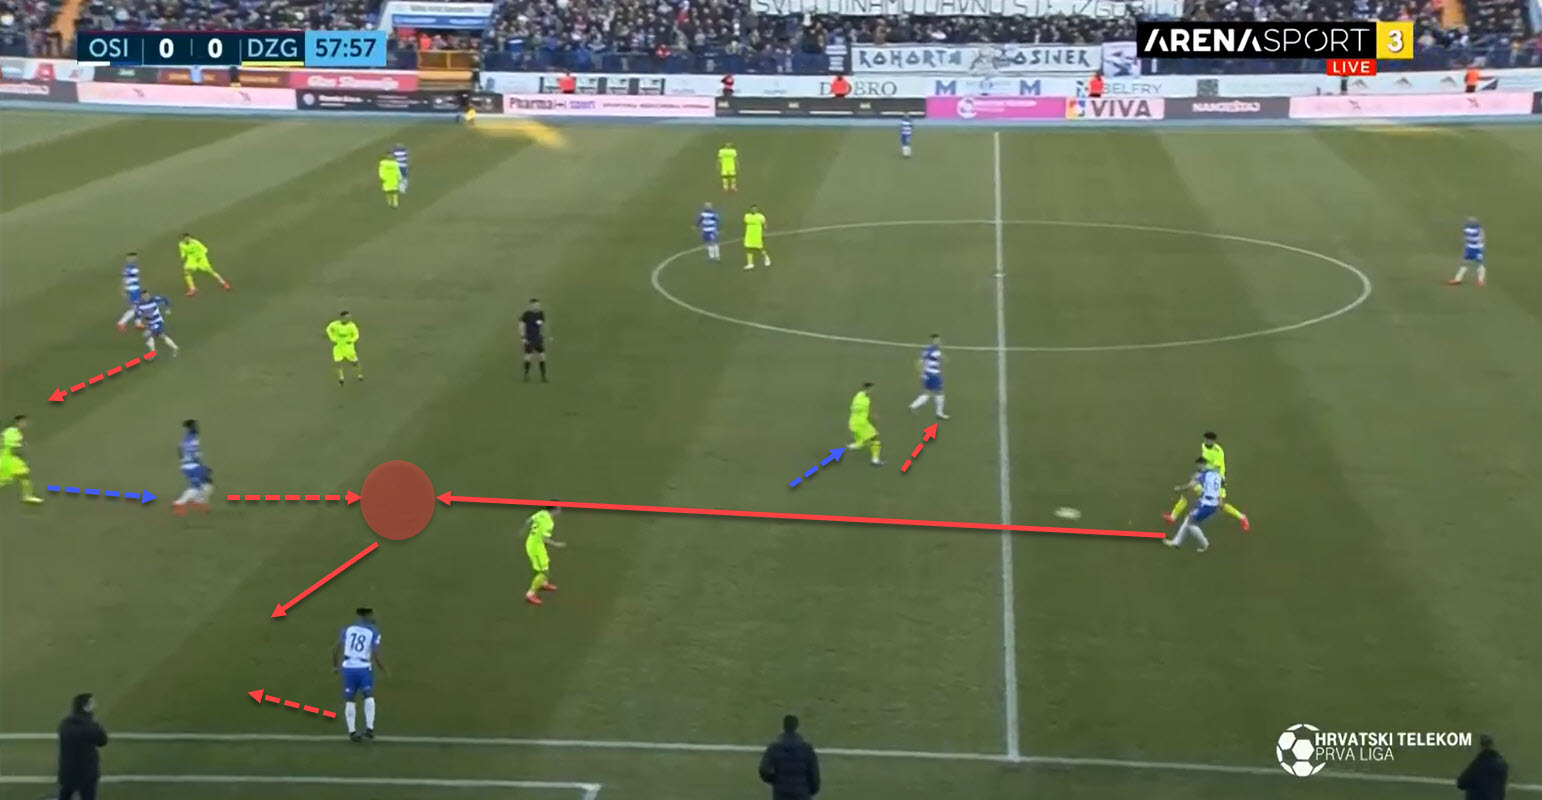 Ivica Kulesevic at NK Osijek 2019/20 - tactical analysis tactics